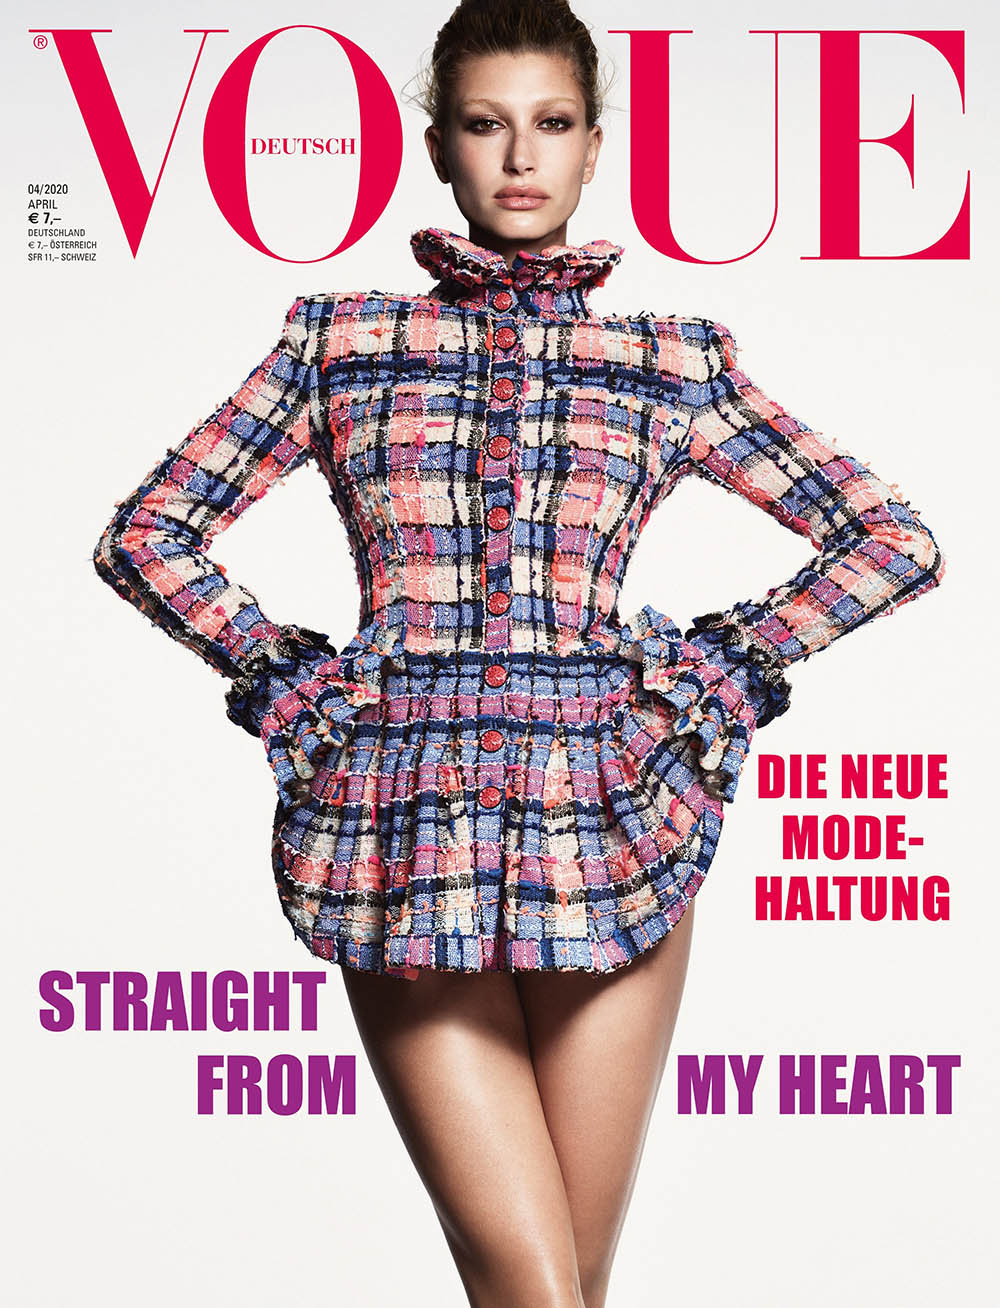 Hailey Baldwin covers Vogue Germany April 2020 by Luigi & Iango